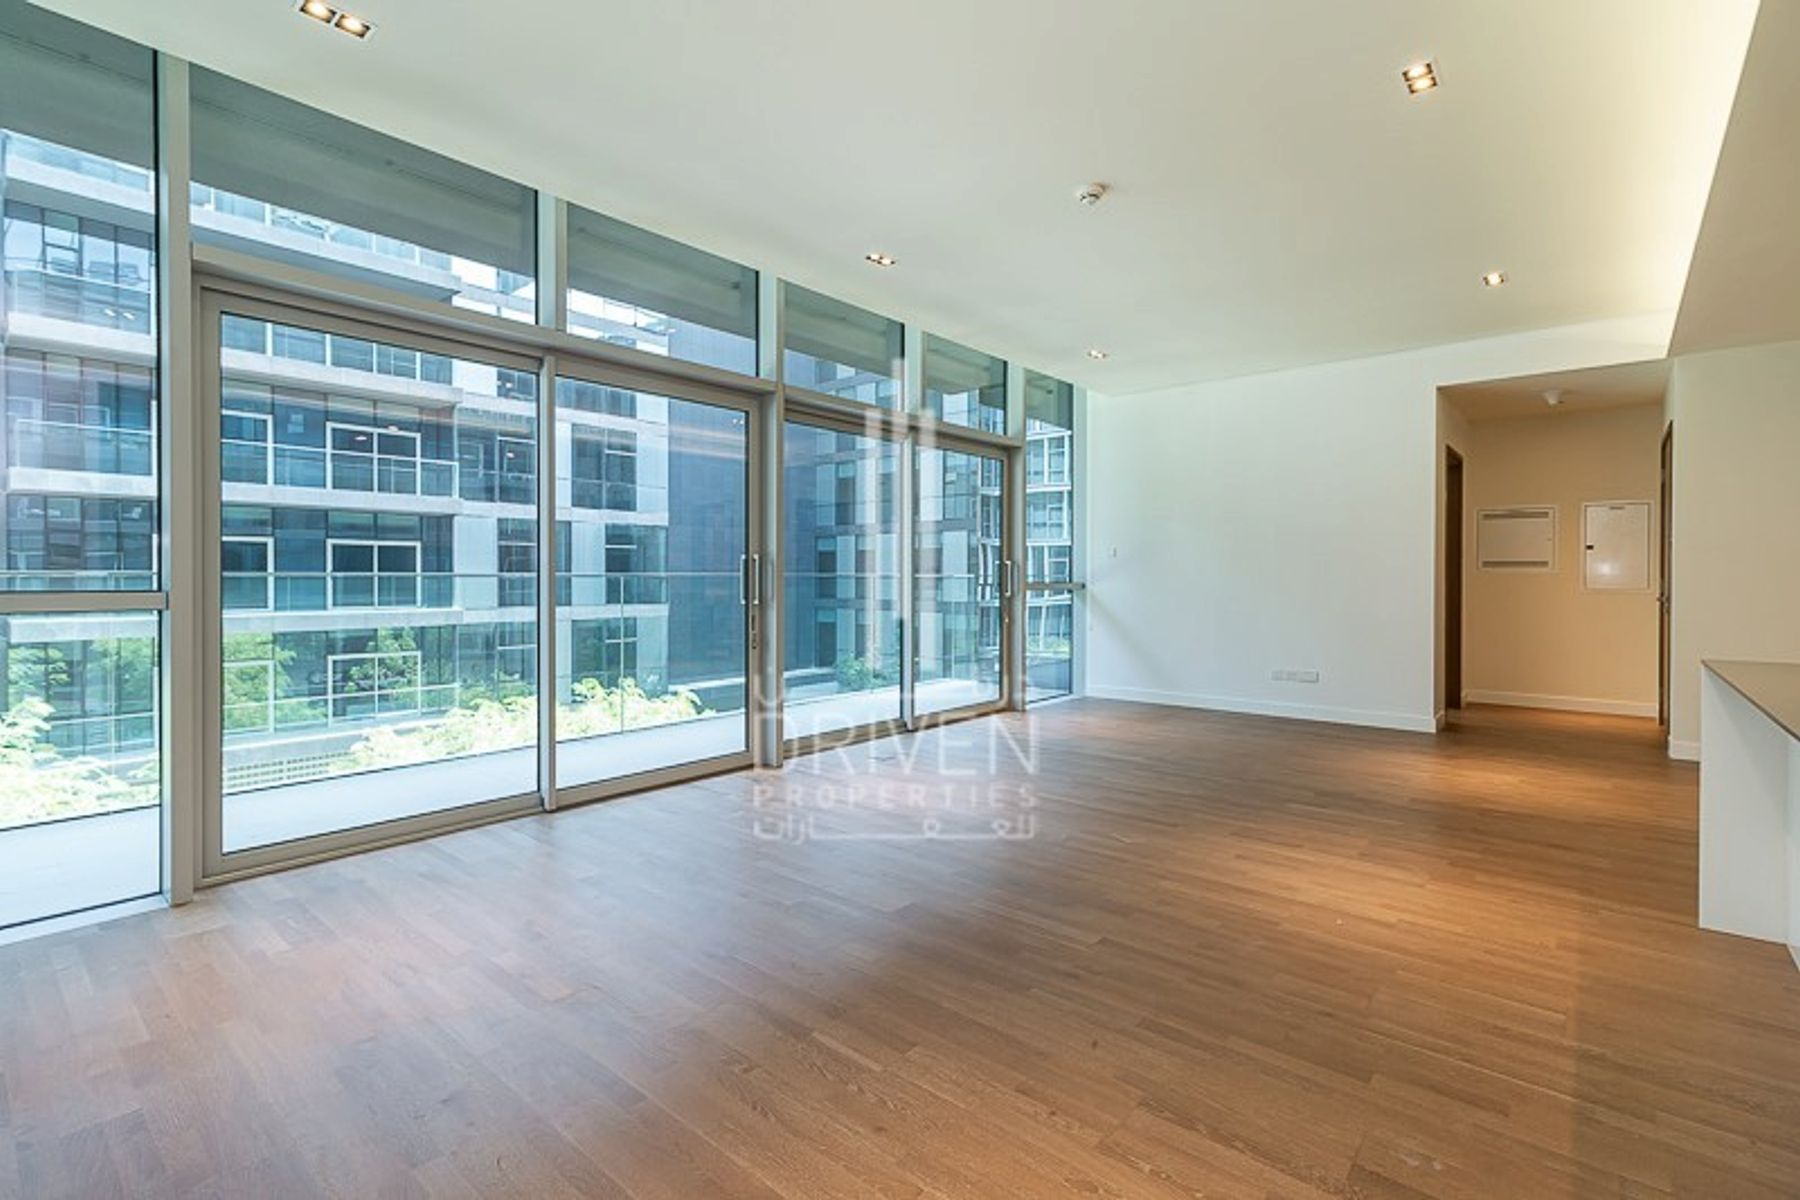 Apartment for Sale in Building 16 - City Walk